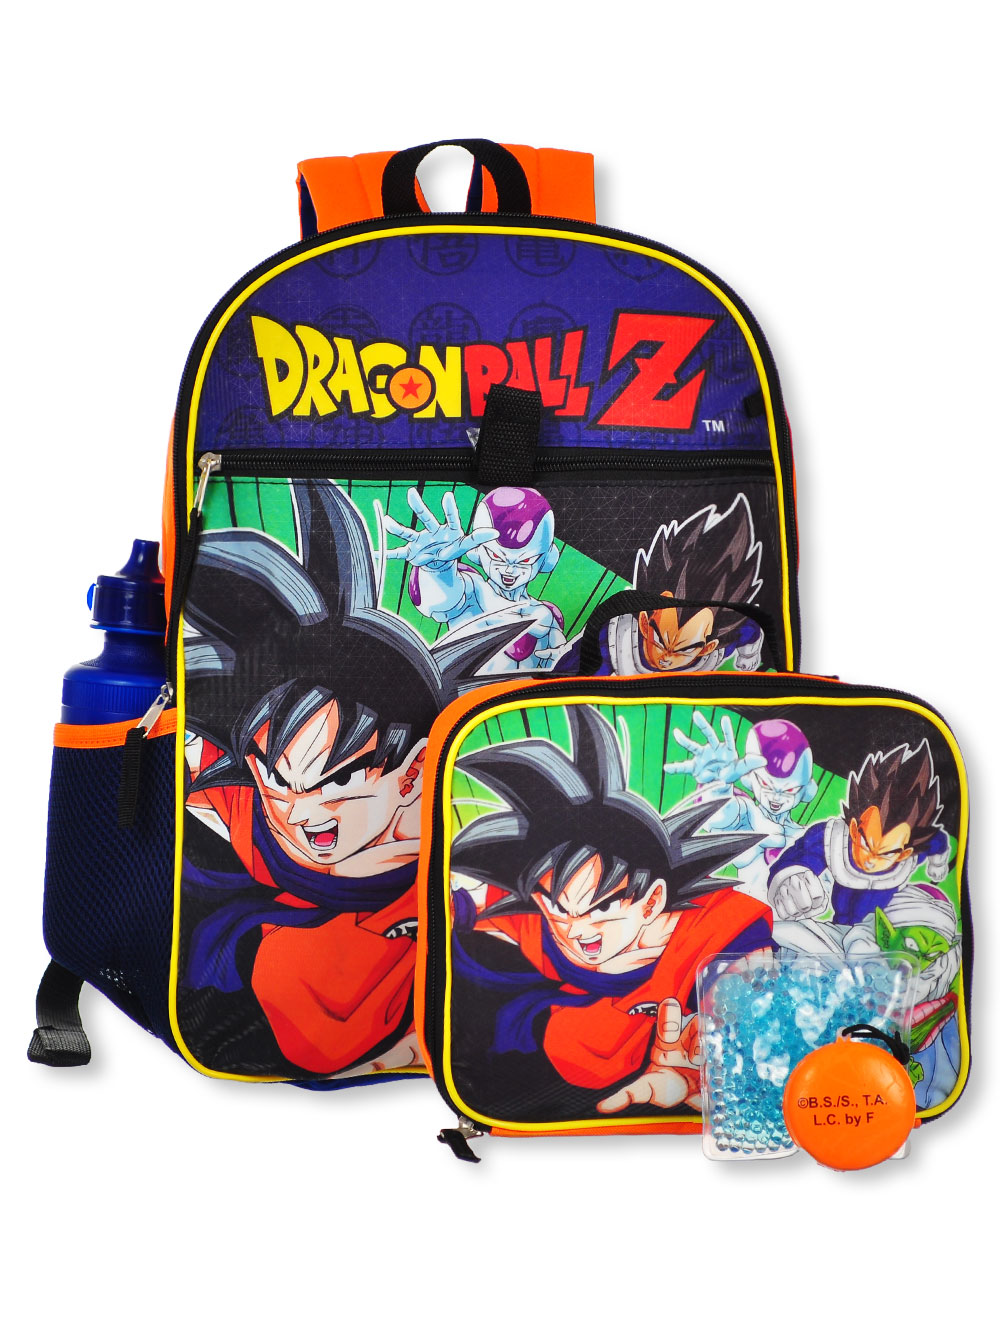 5-Piece Backpack Set by Dragon Ball Z in Blue/orange